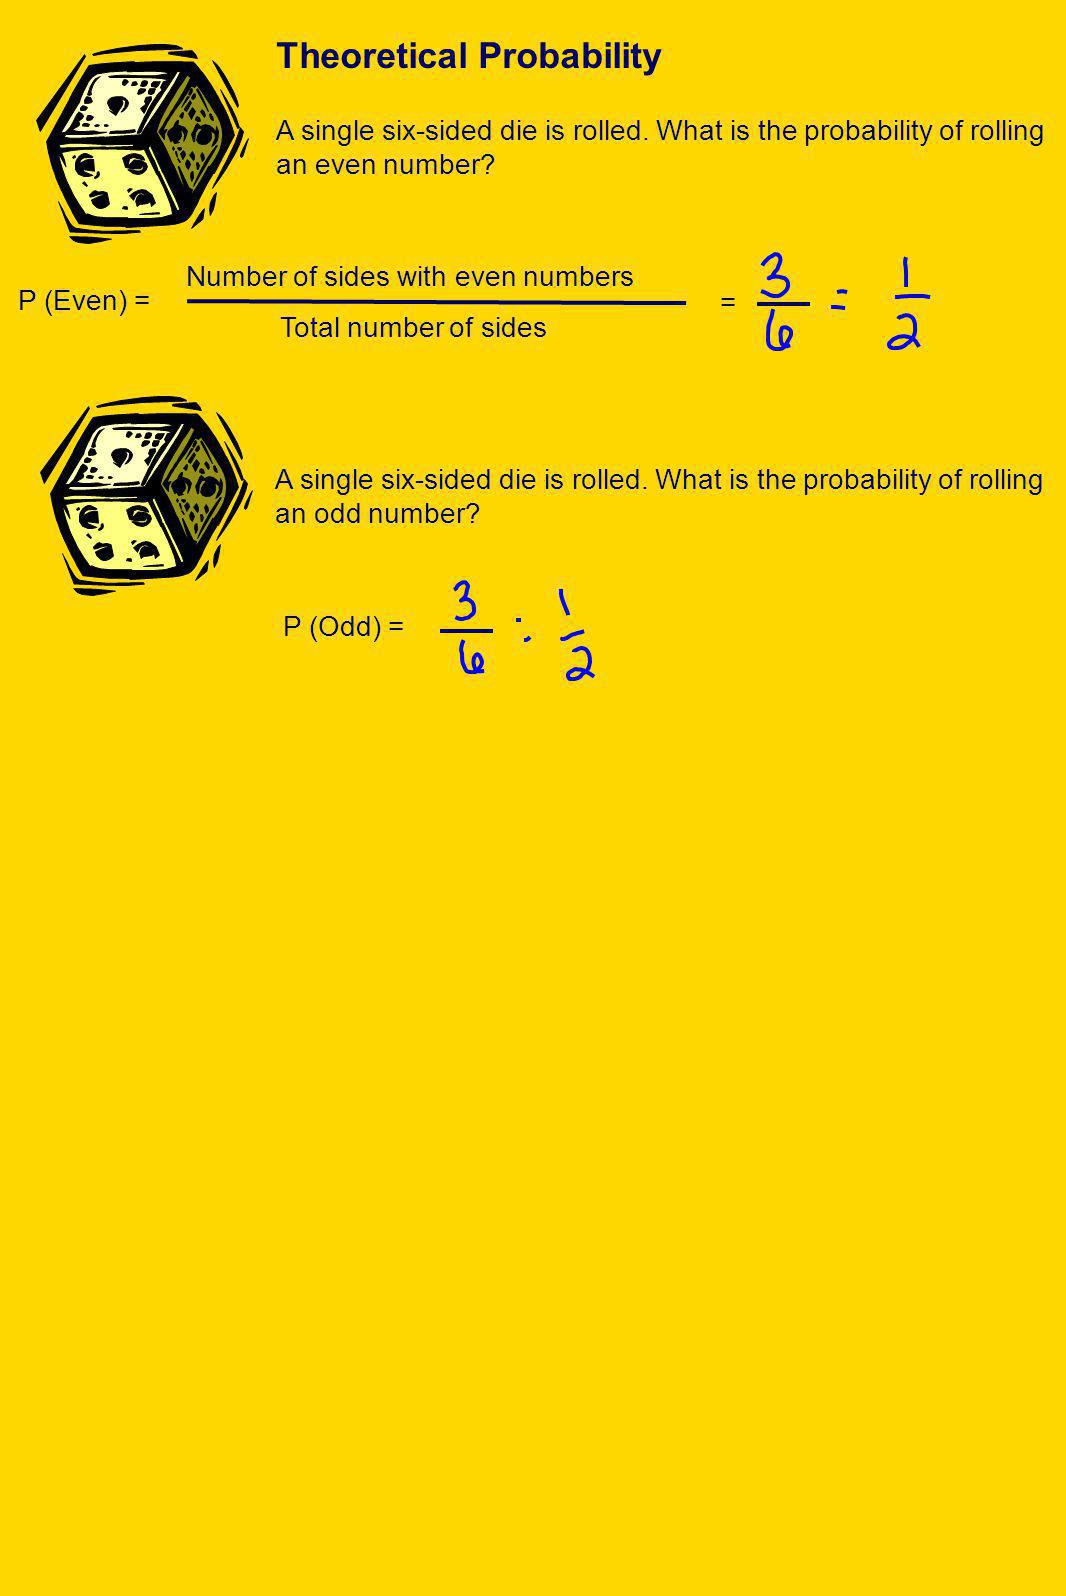 P (Even) = = A single six-sided die is rolled. What is the probability of rolling an even number? Number of sides with even numbers Total number of si